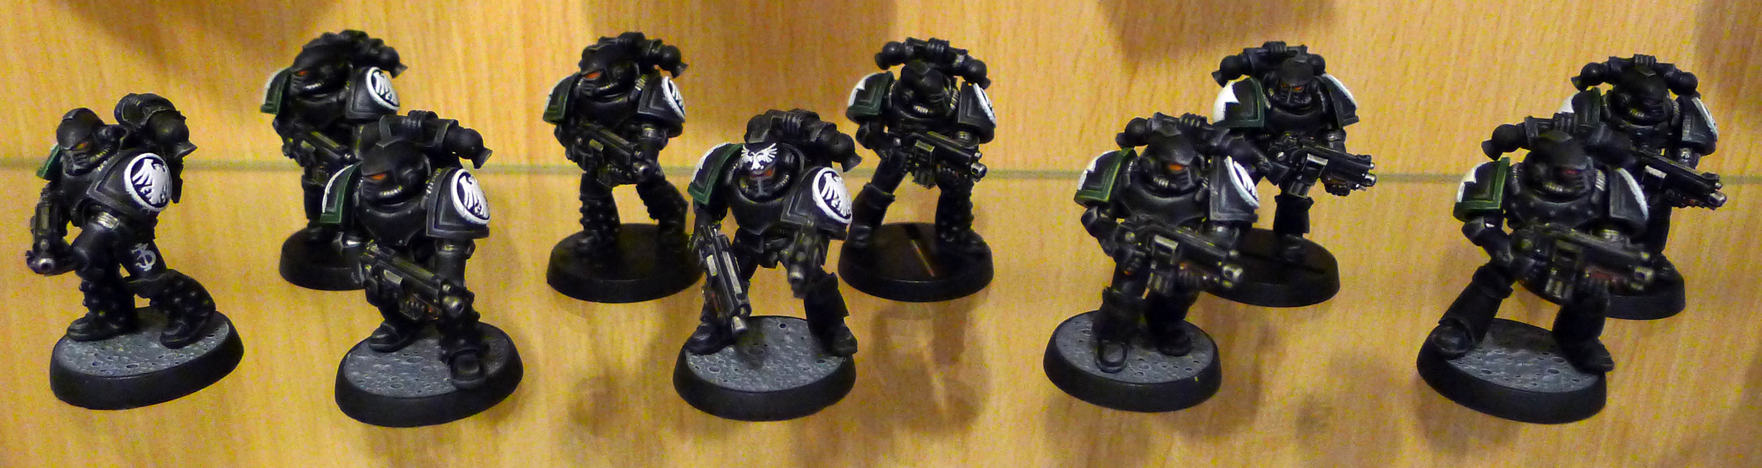 RavenGuard-Tactical01.png?dl=0